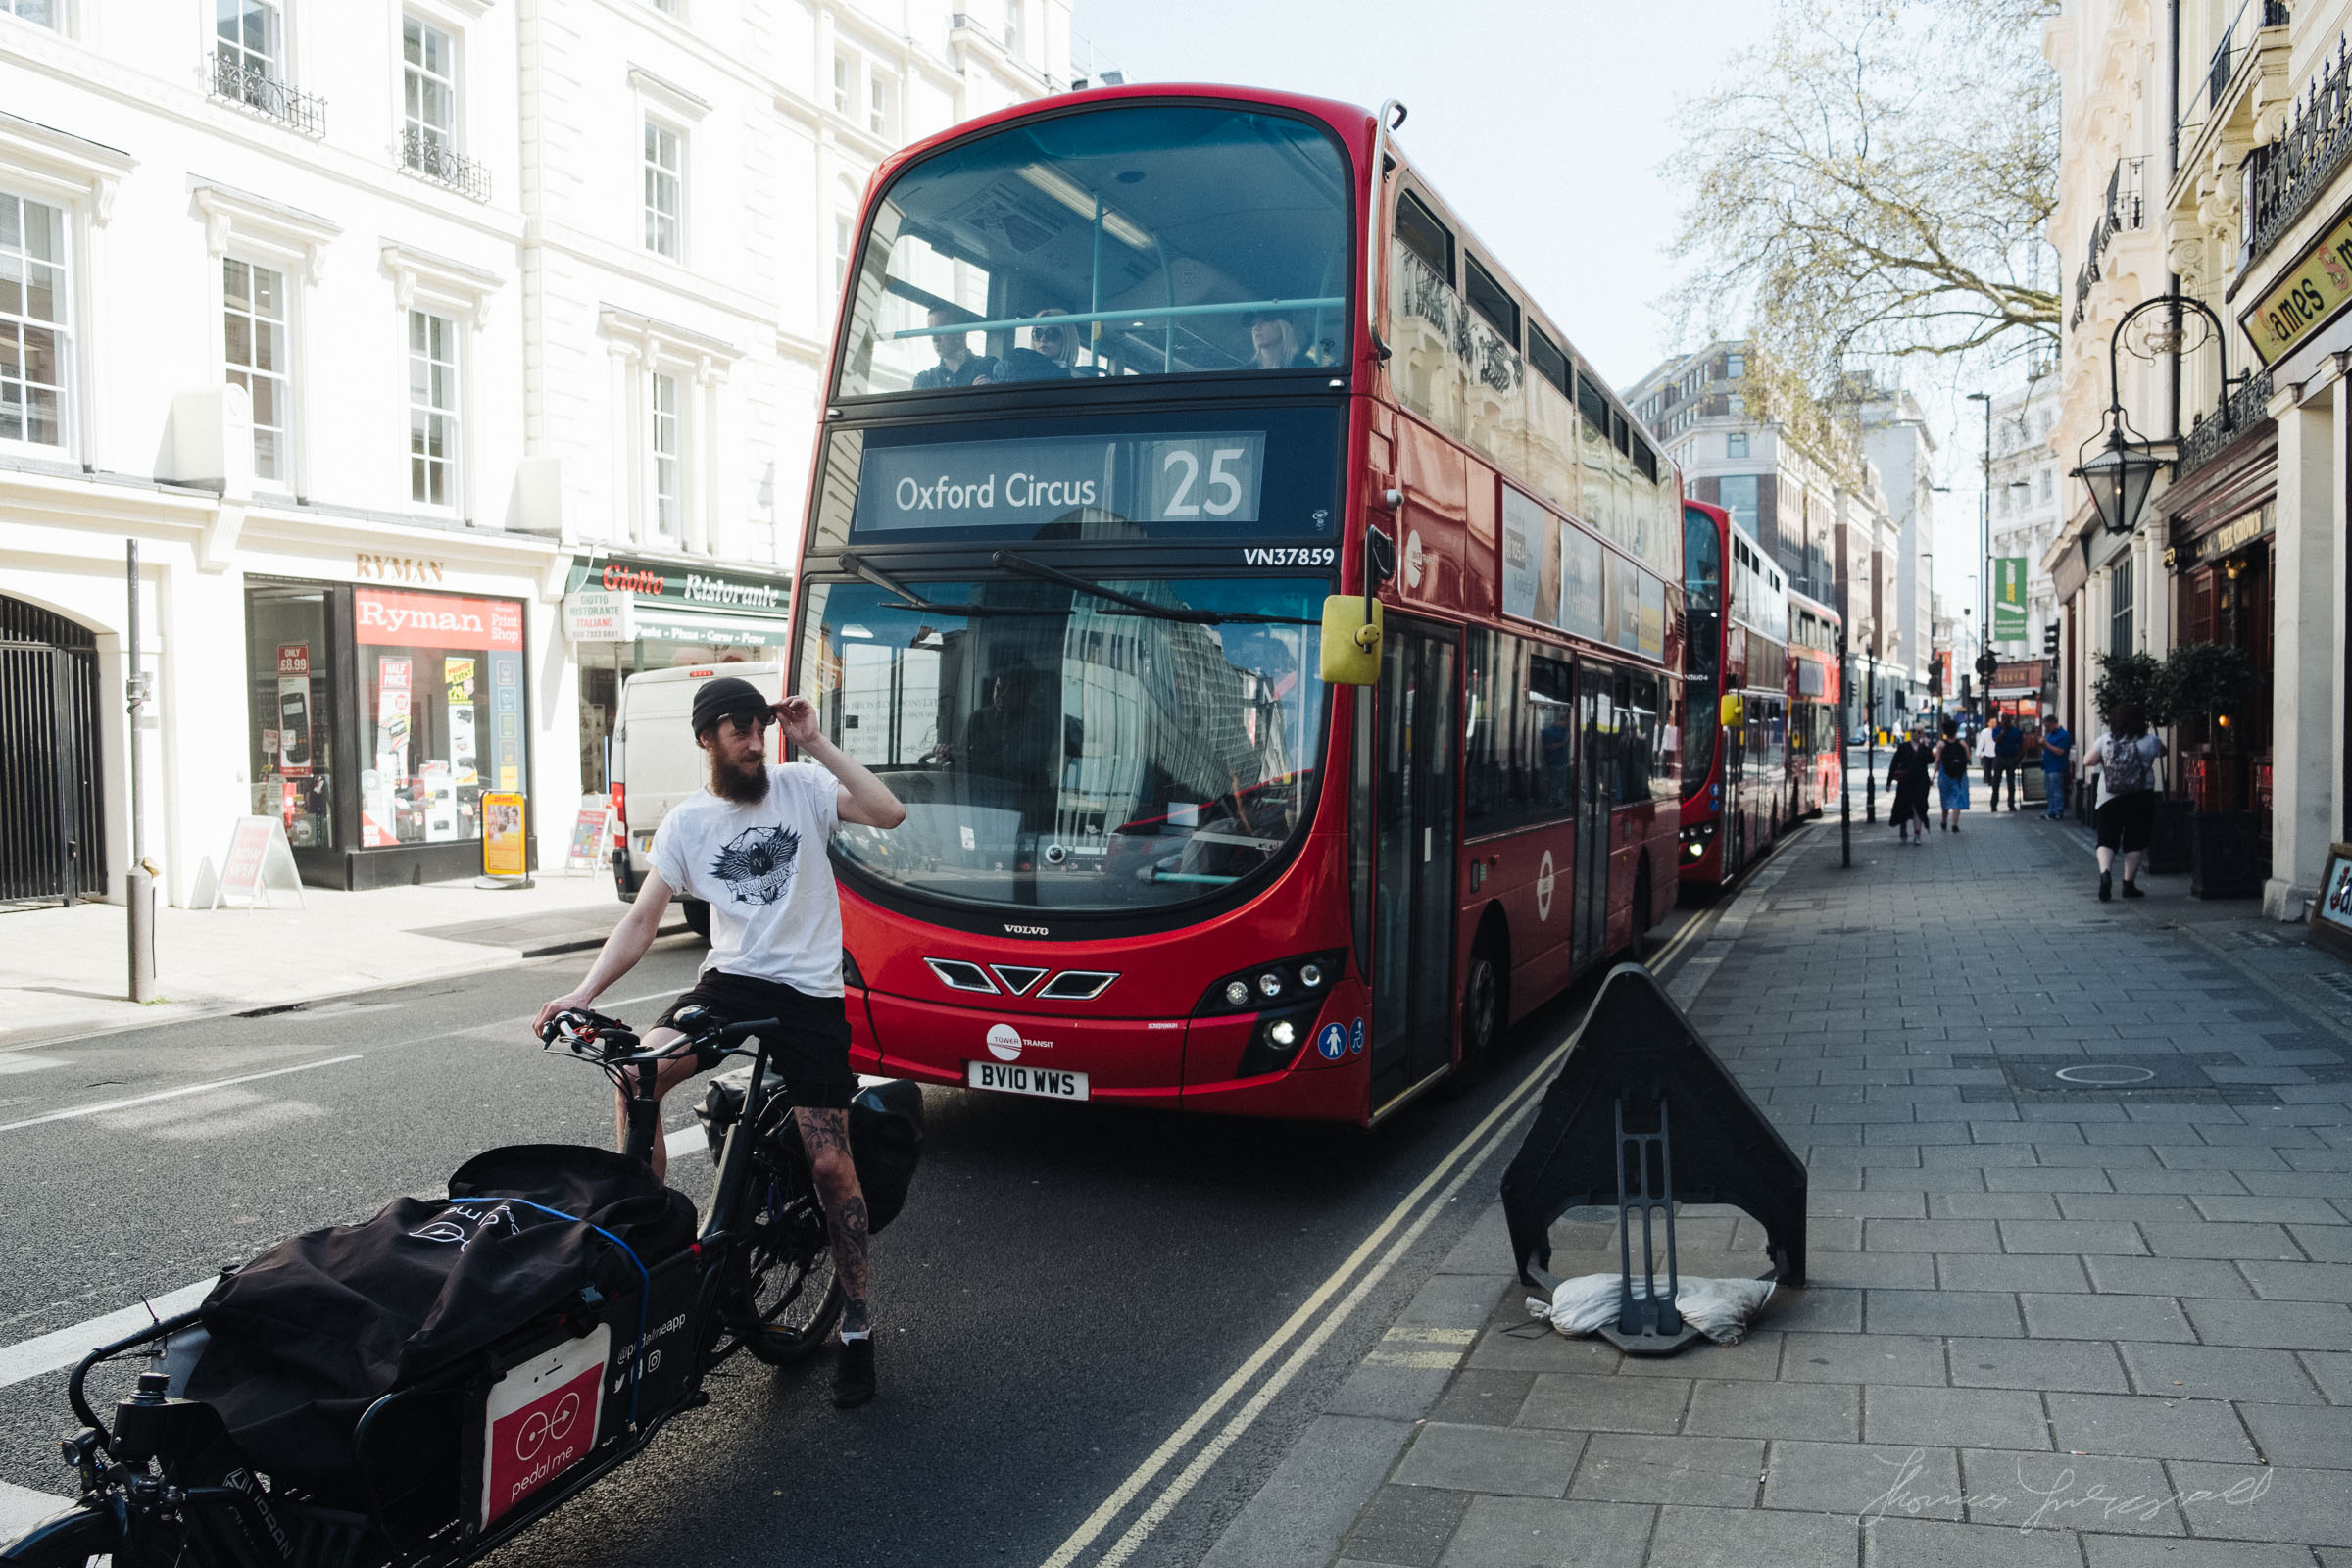 Cyclist and Red Doubledecker bus in London